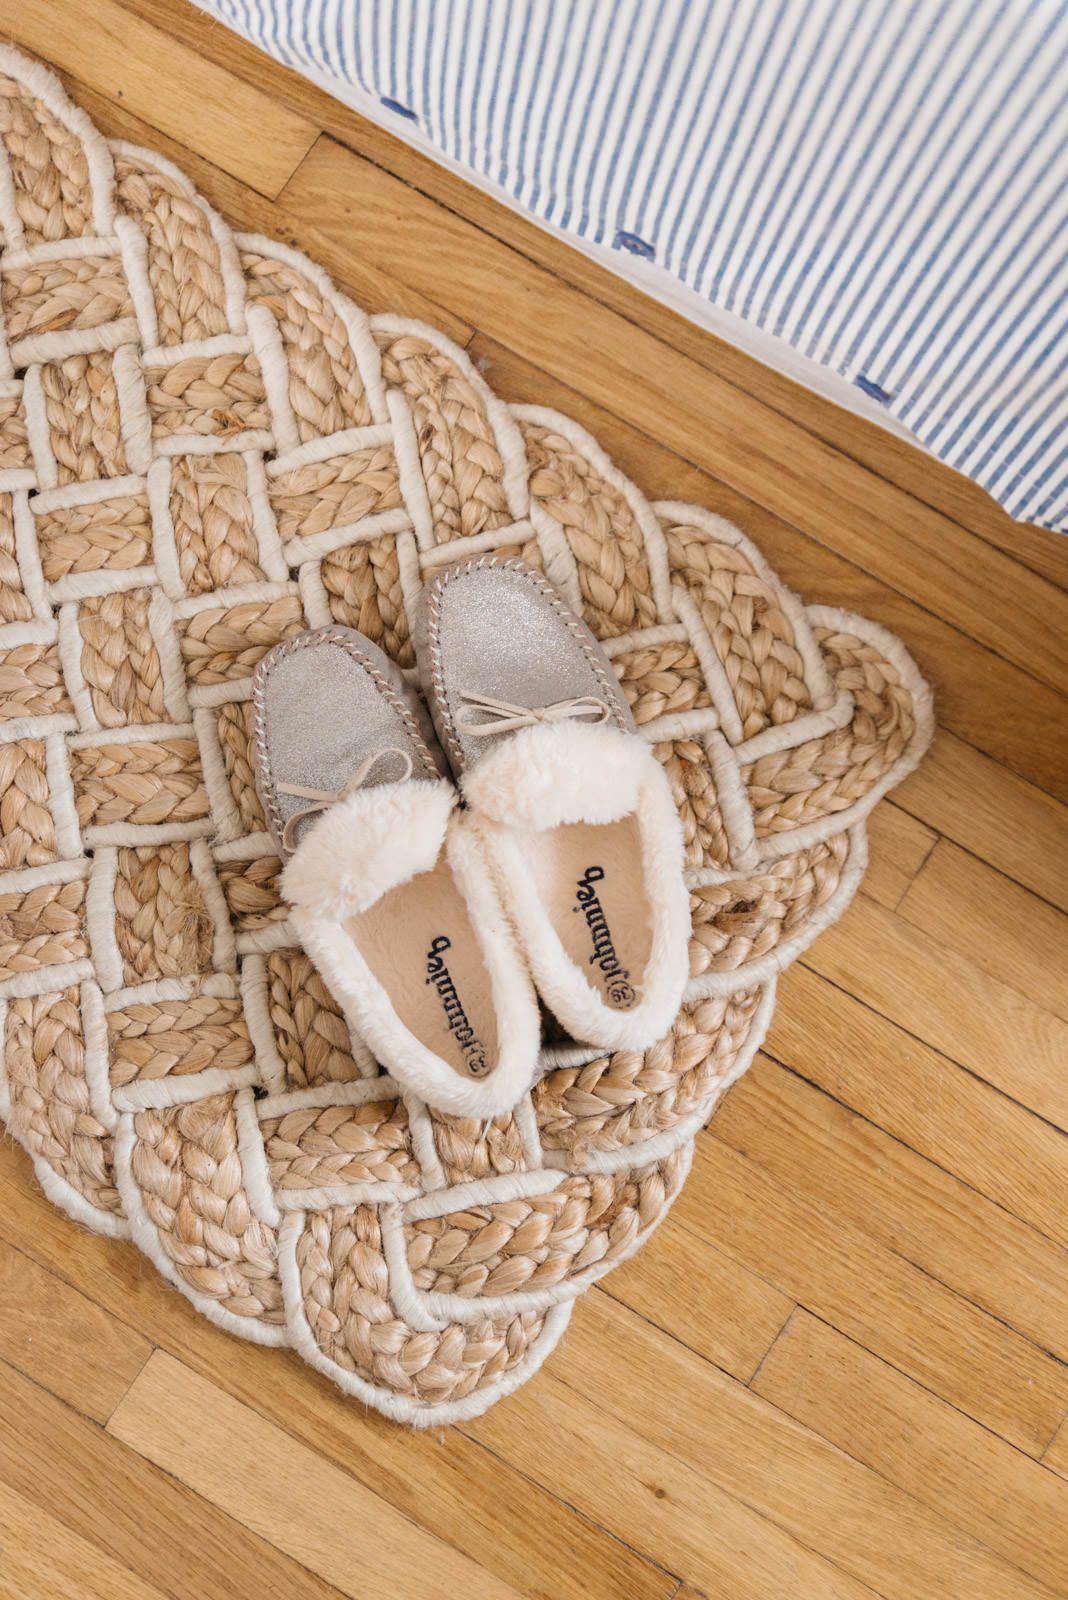 Blog-Mode-And-The-City-Lifestyle-Cinq-Petites-Choses-194-chaussons-boden